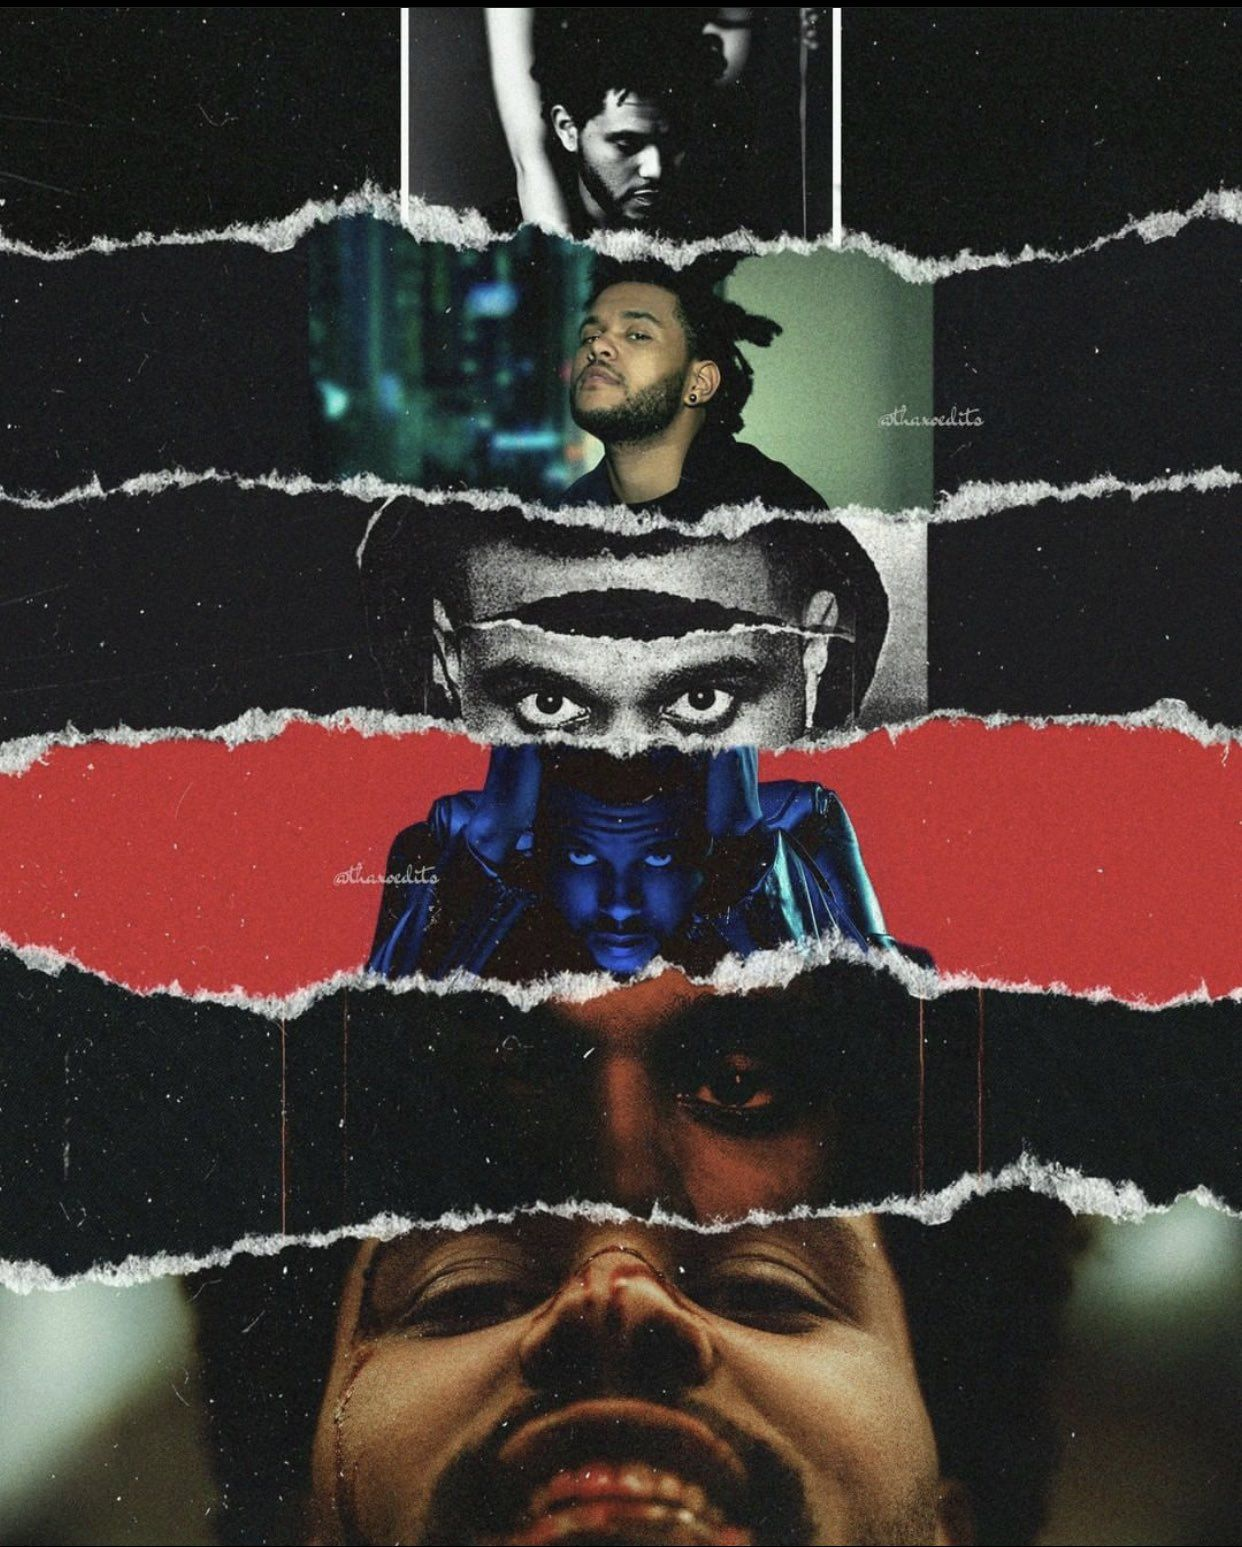 The Weeknd On Twitter In 2021 The Weeknd Background The Weeknd Poster The Weeknd Album Cover